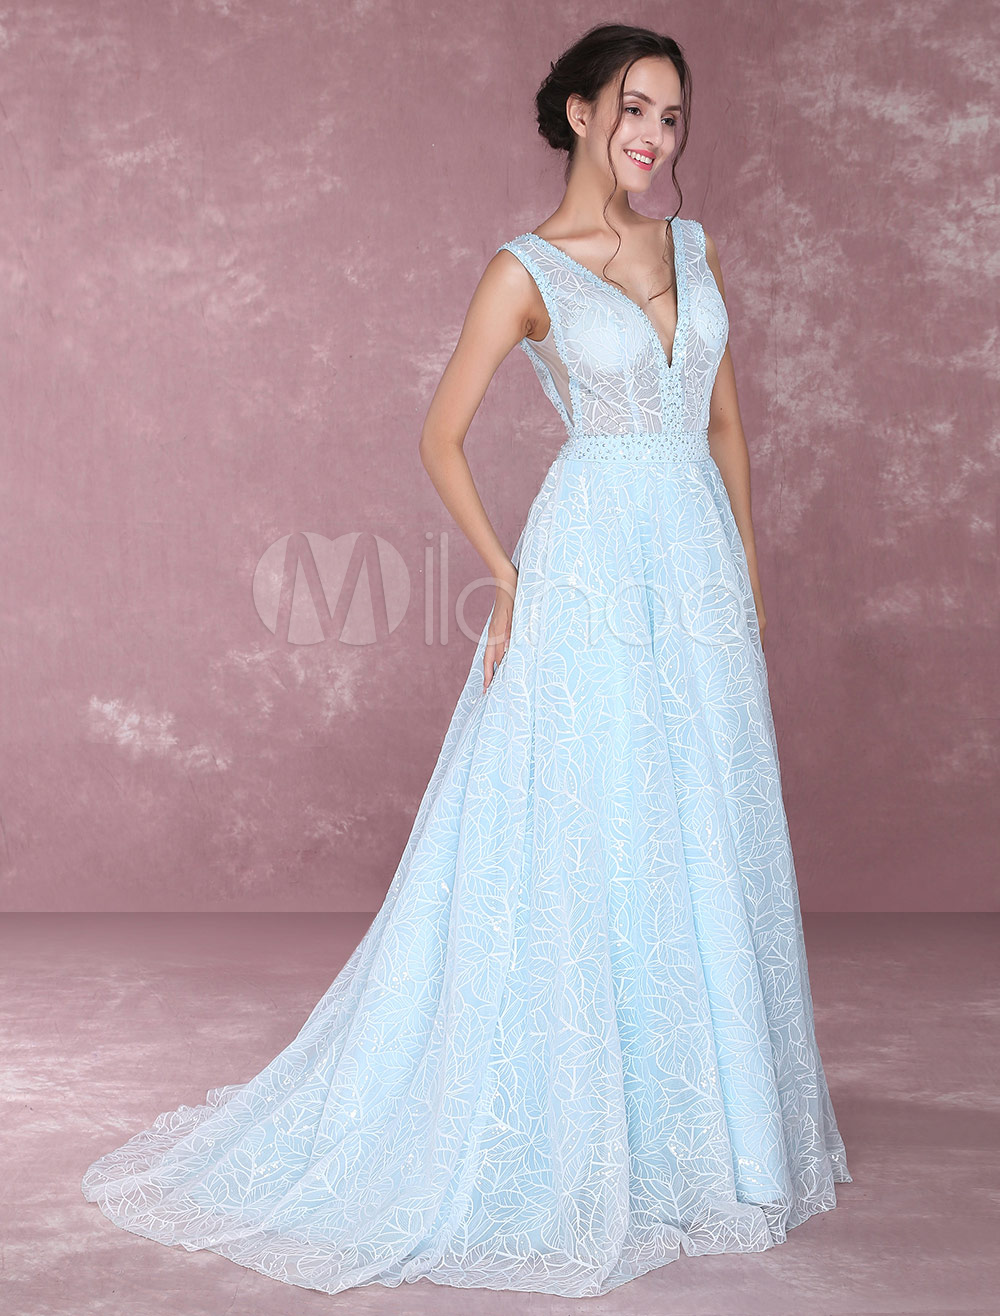 878273f3f54 Lace Pageant Dress Pastel Blue V Neck Prom Dresses Beading Illusion  Occasion Dress With Train (